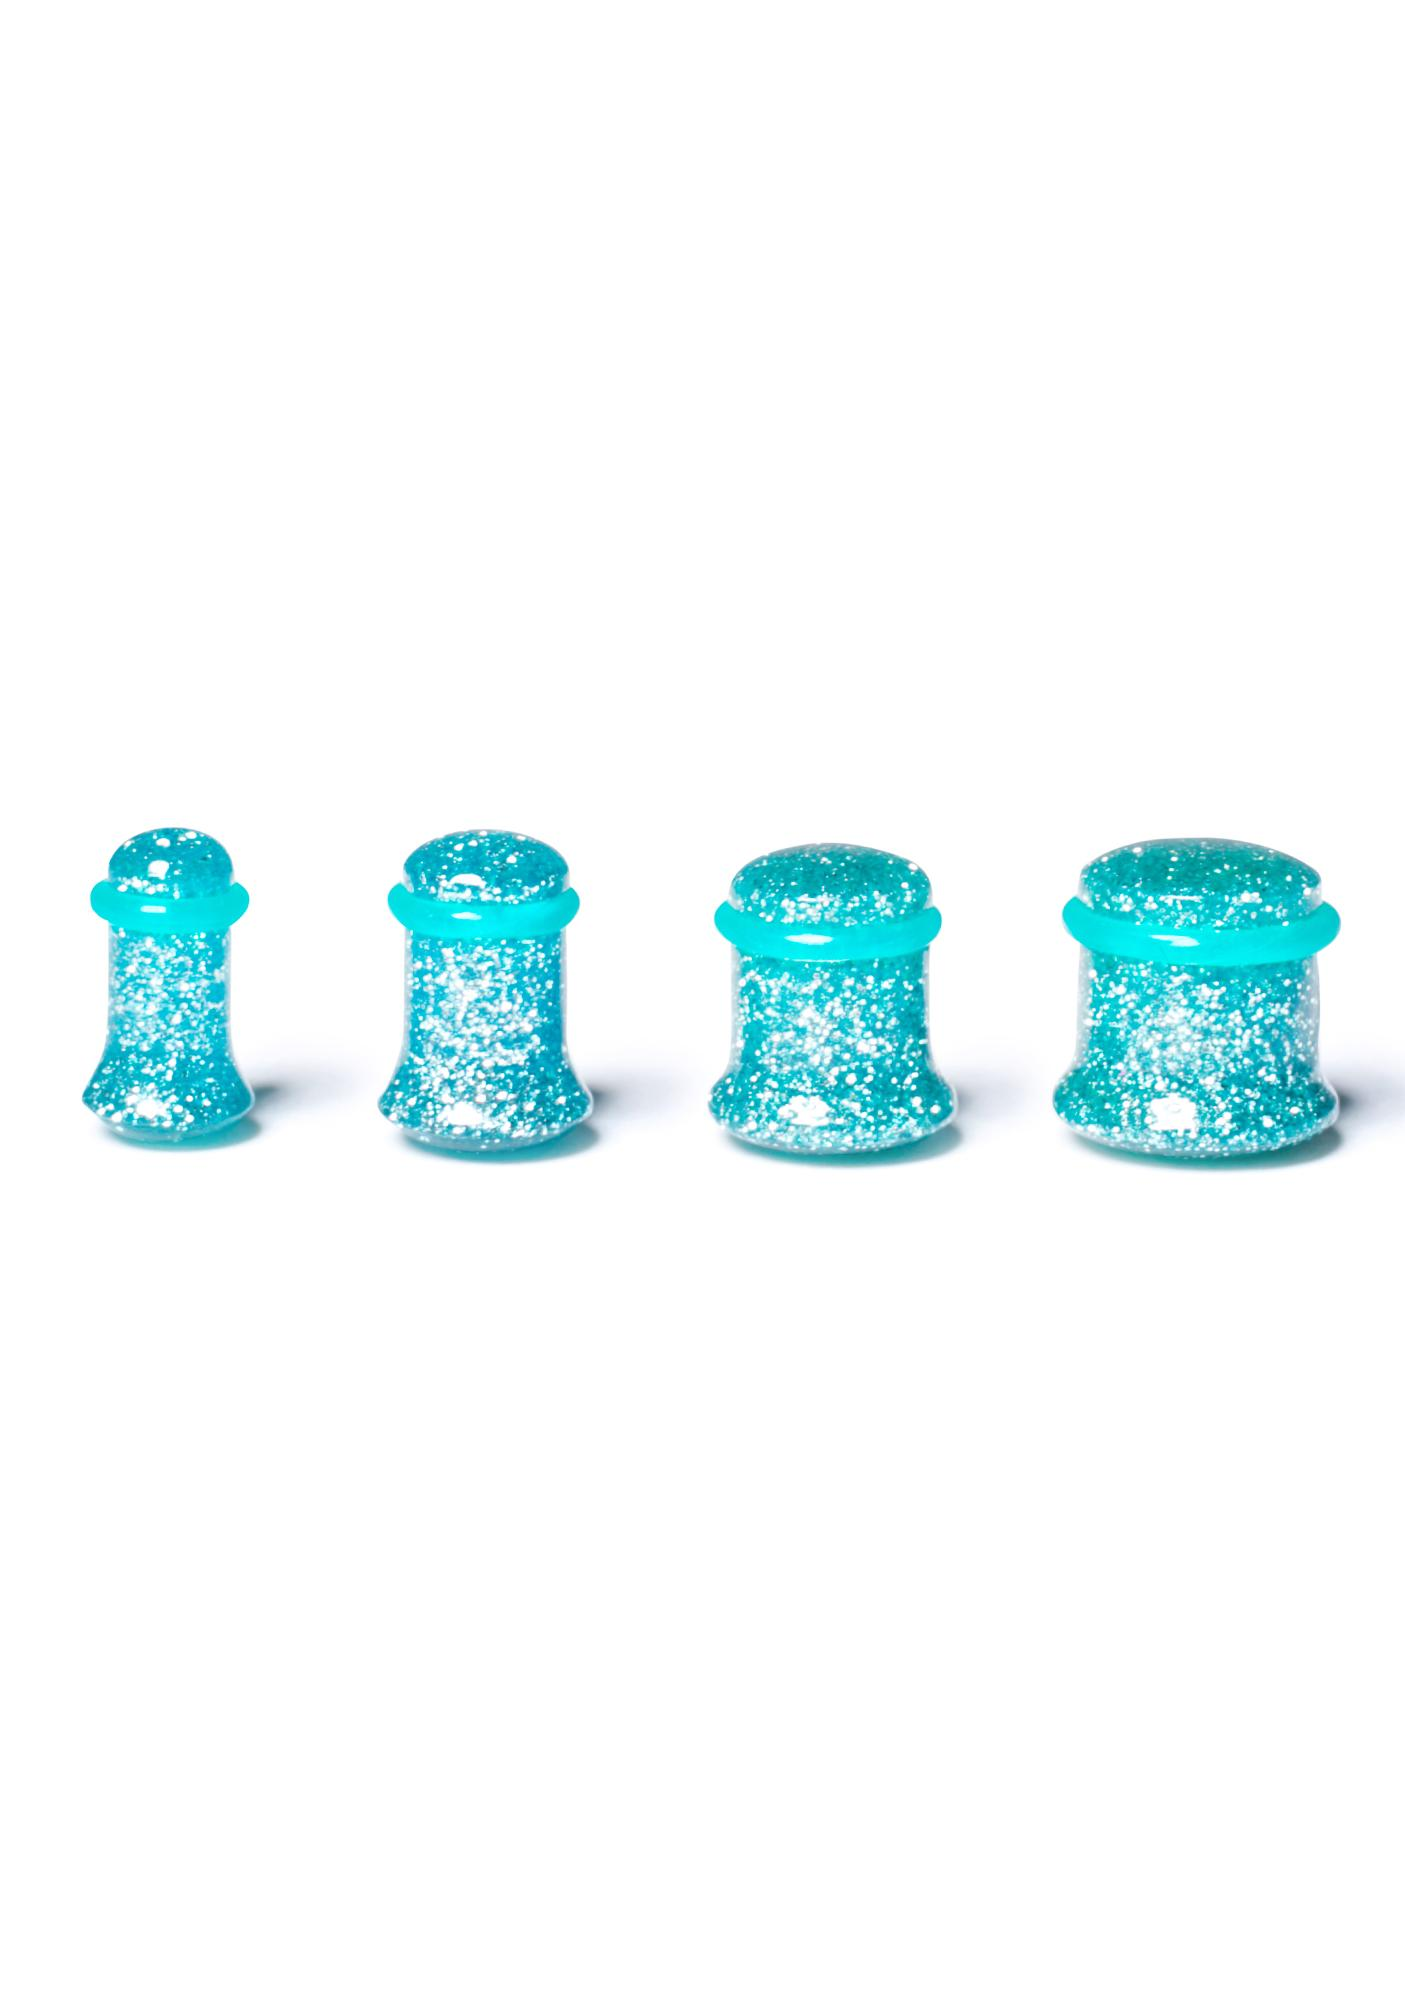 Aqua Dreams Gauged Glitter Plugs